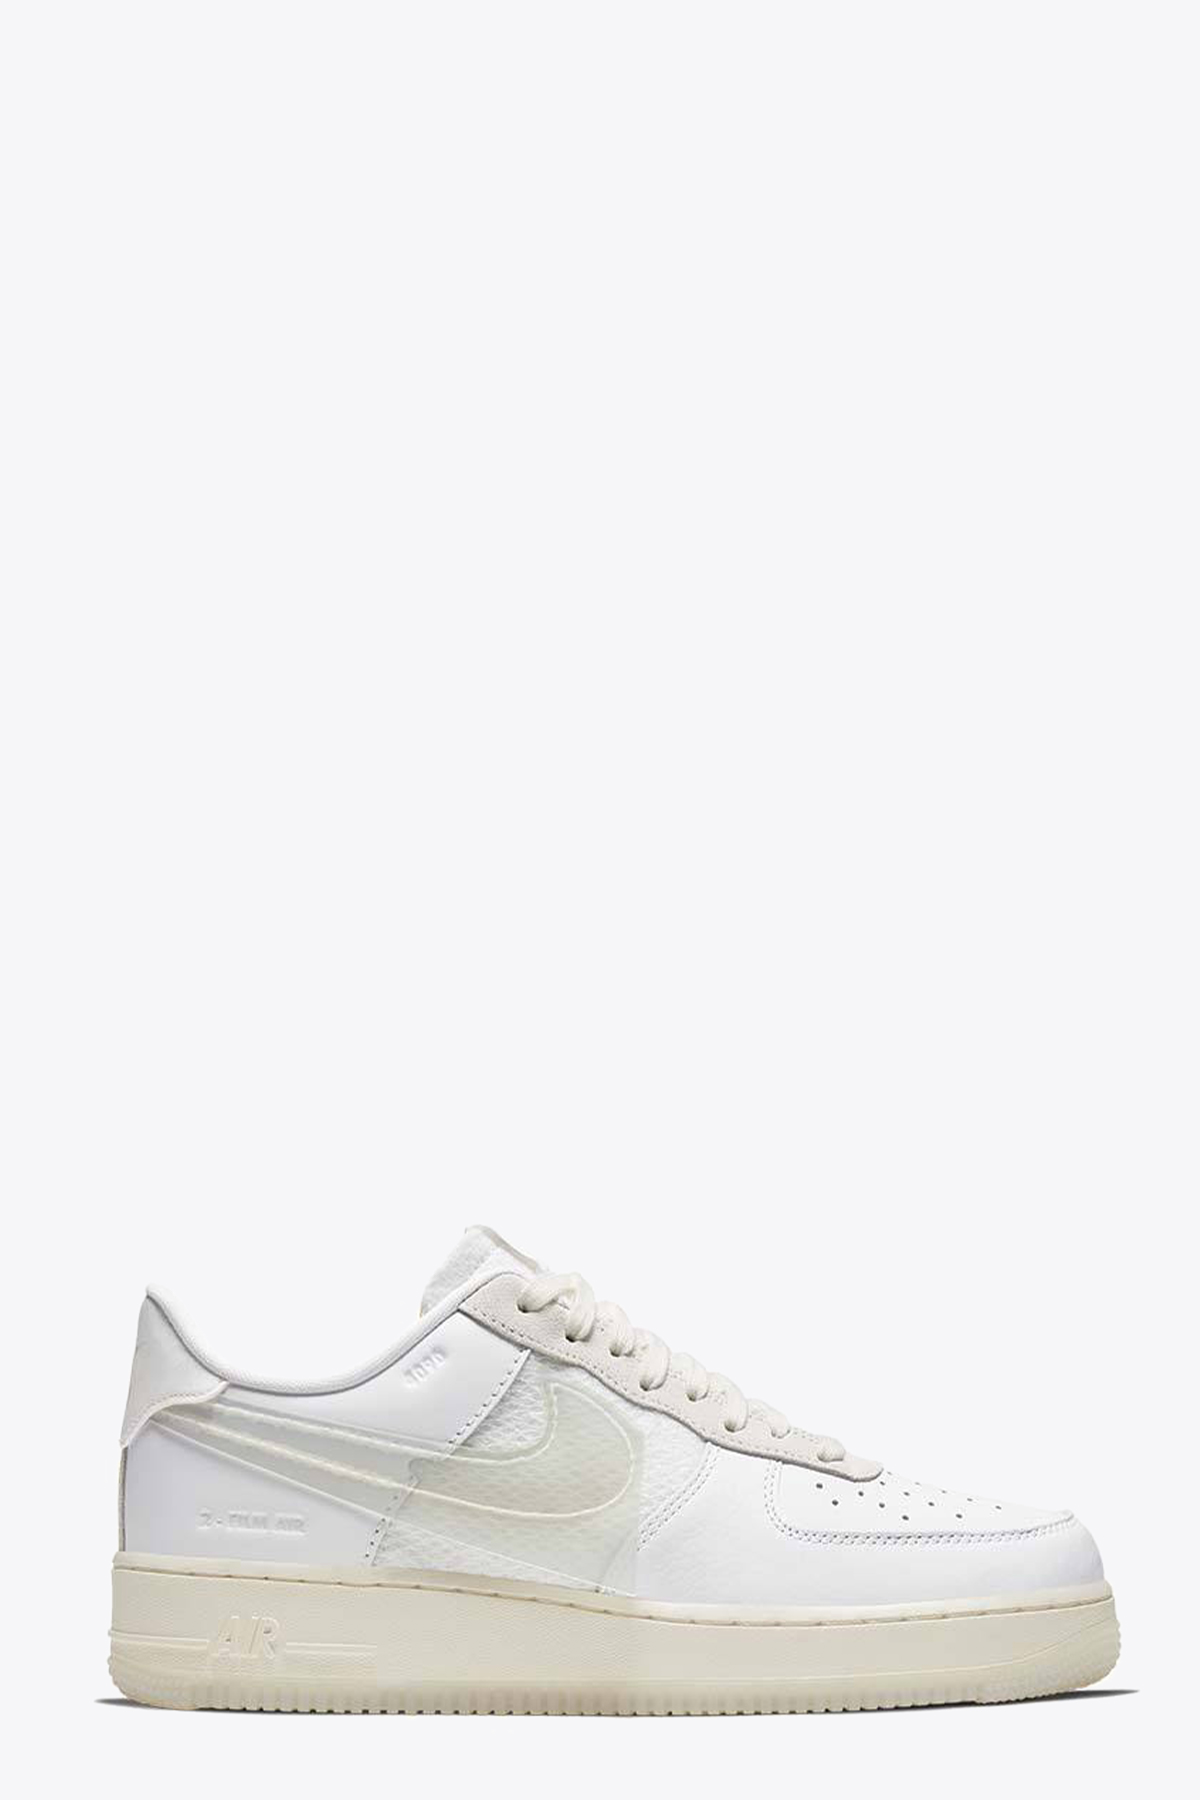 Nike Air Force 1 '07 LV8 CV3040 100 | BSTN Store